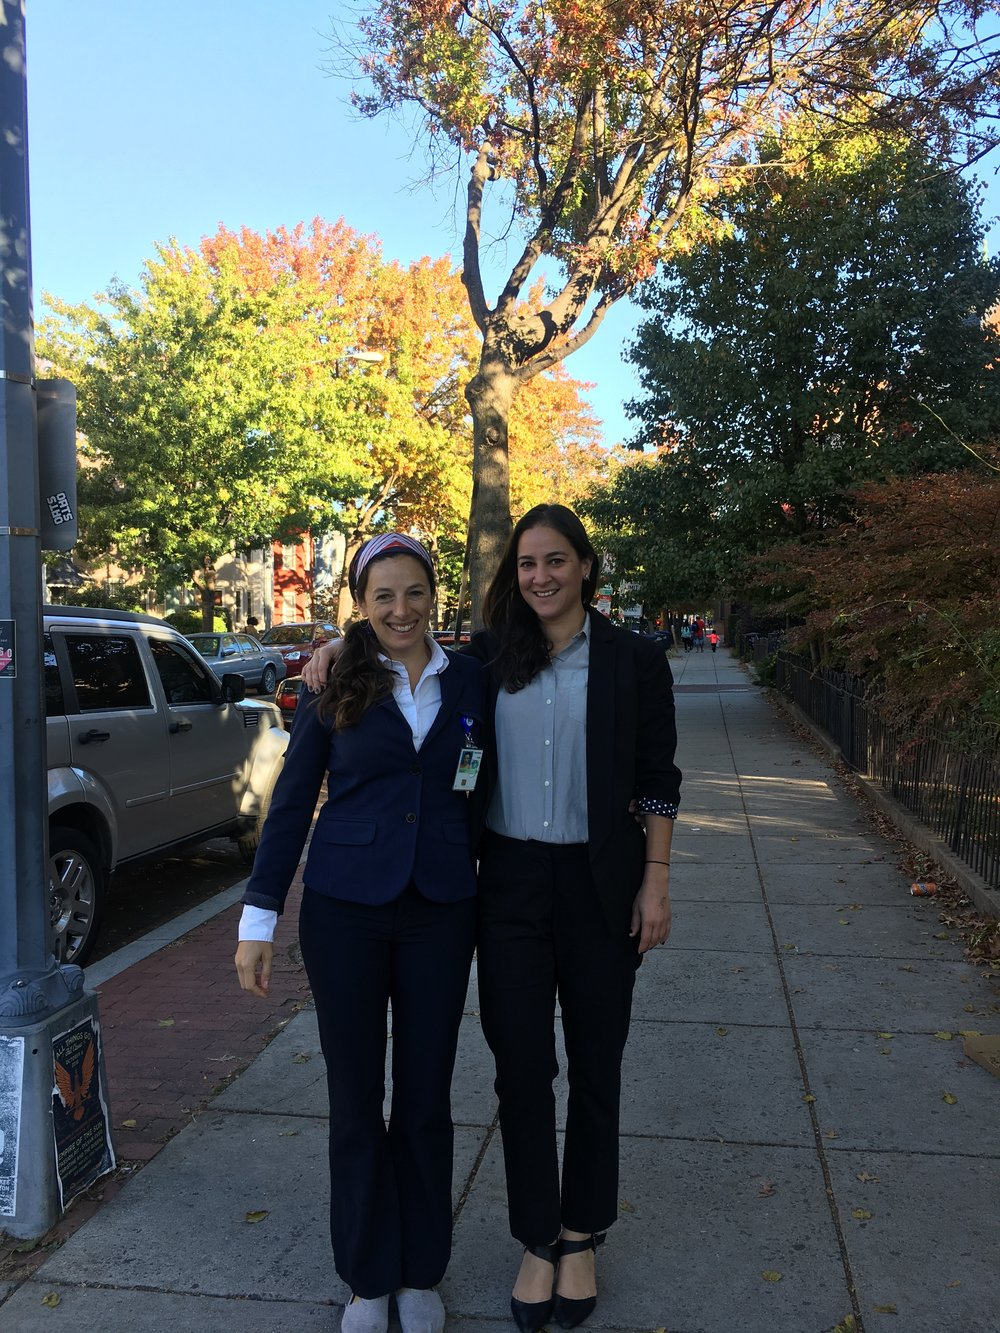 Pantsuit sisters Jane and Anjali.